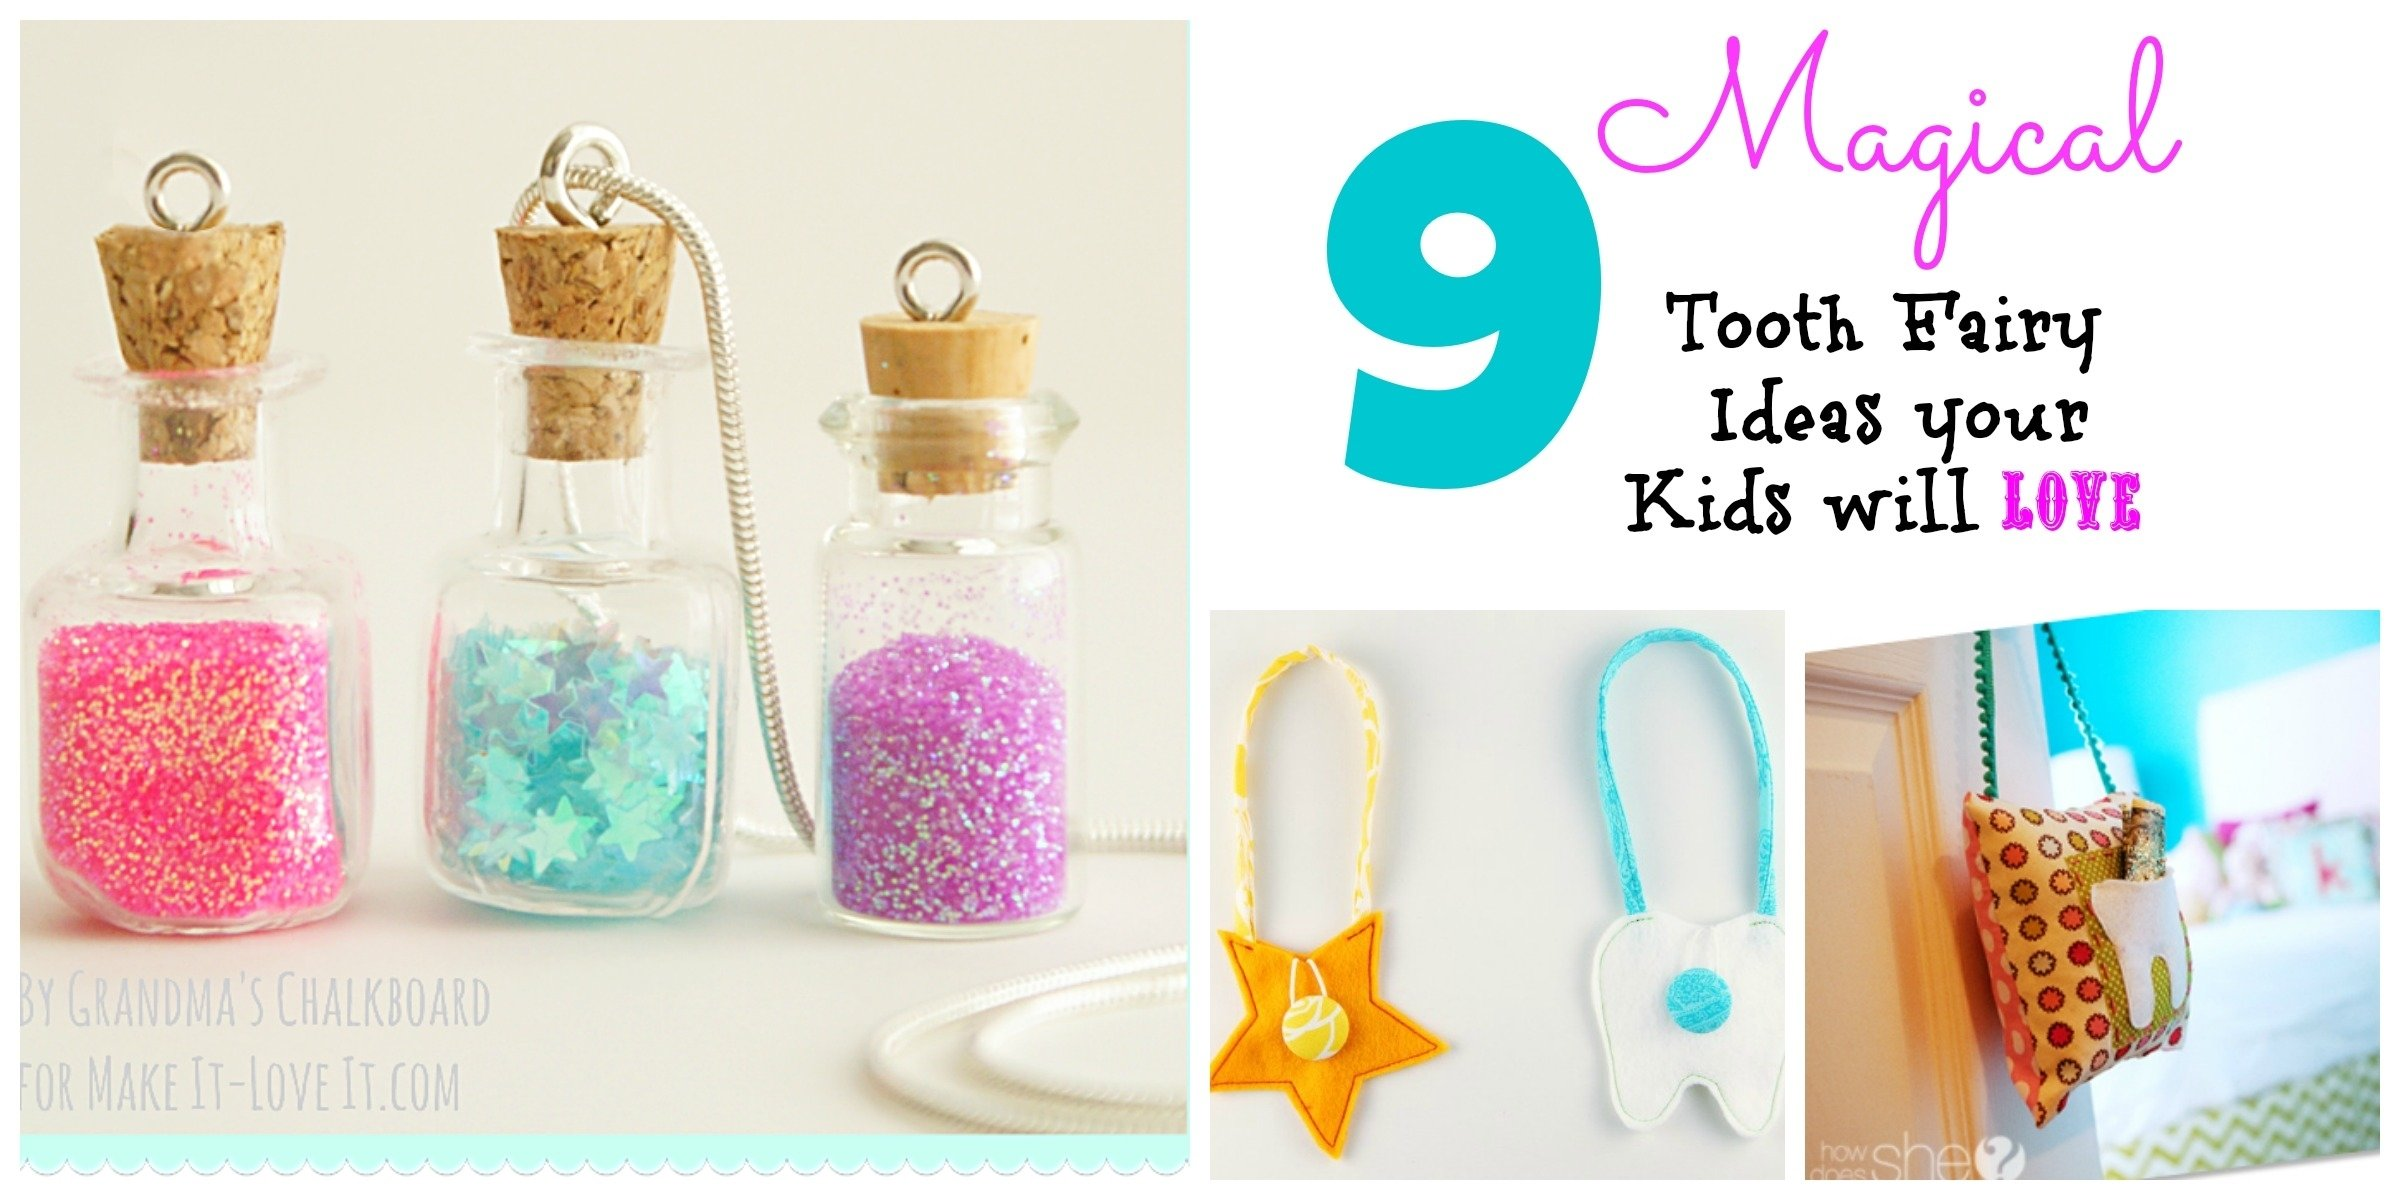 10 Elegant Tooth Fairy Ideas For First Tooth magical tooth fairy ideas 2020